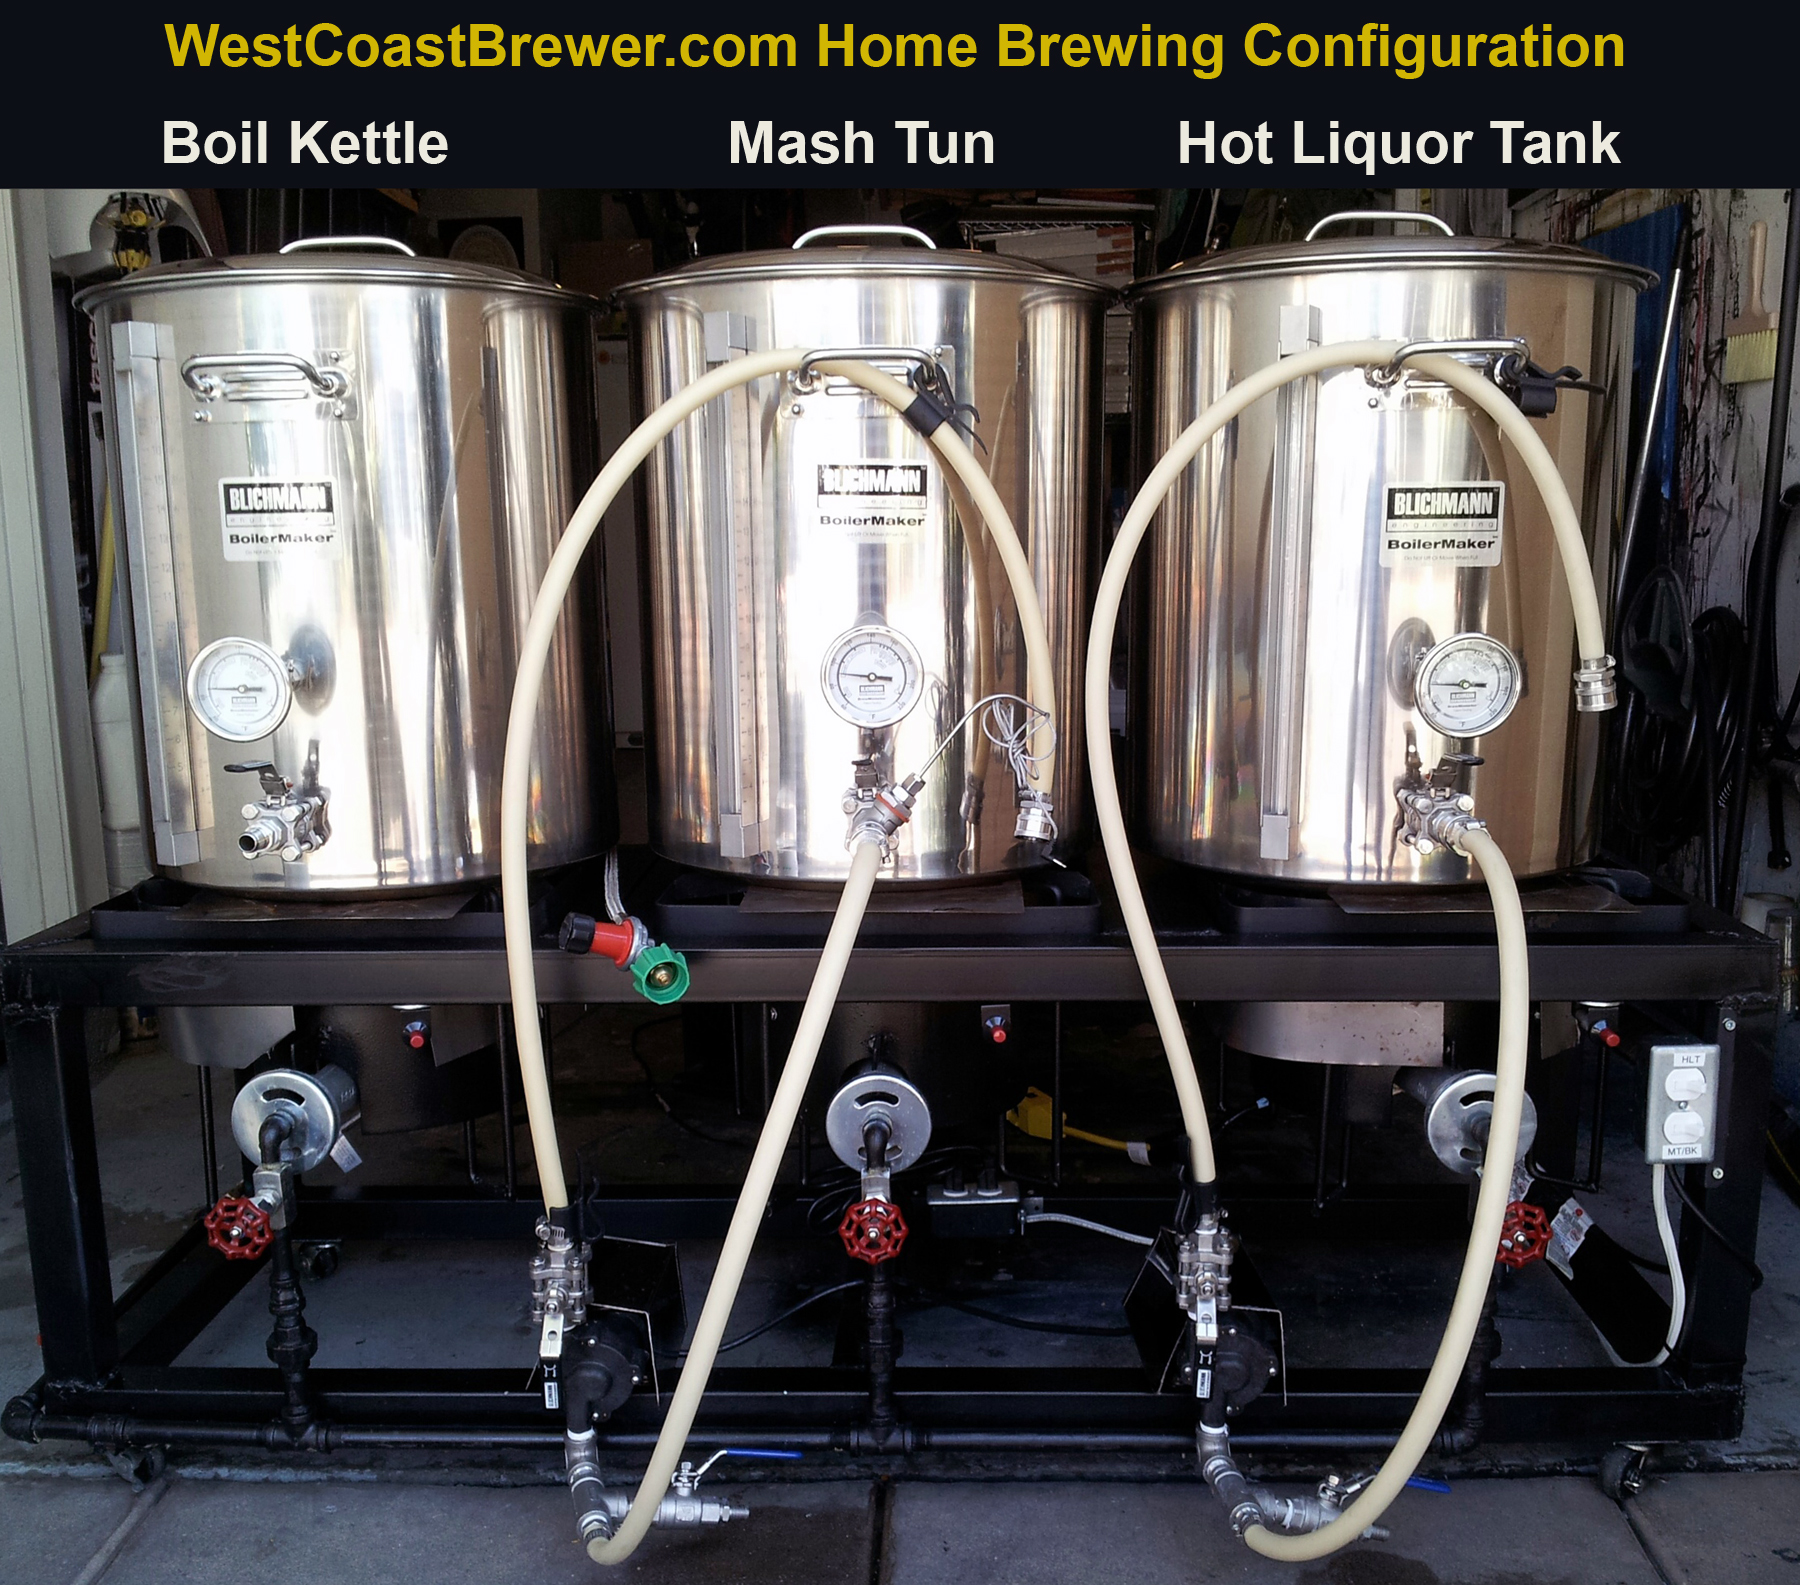 Mash Tun Homebrewing Brewers Blog